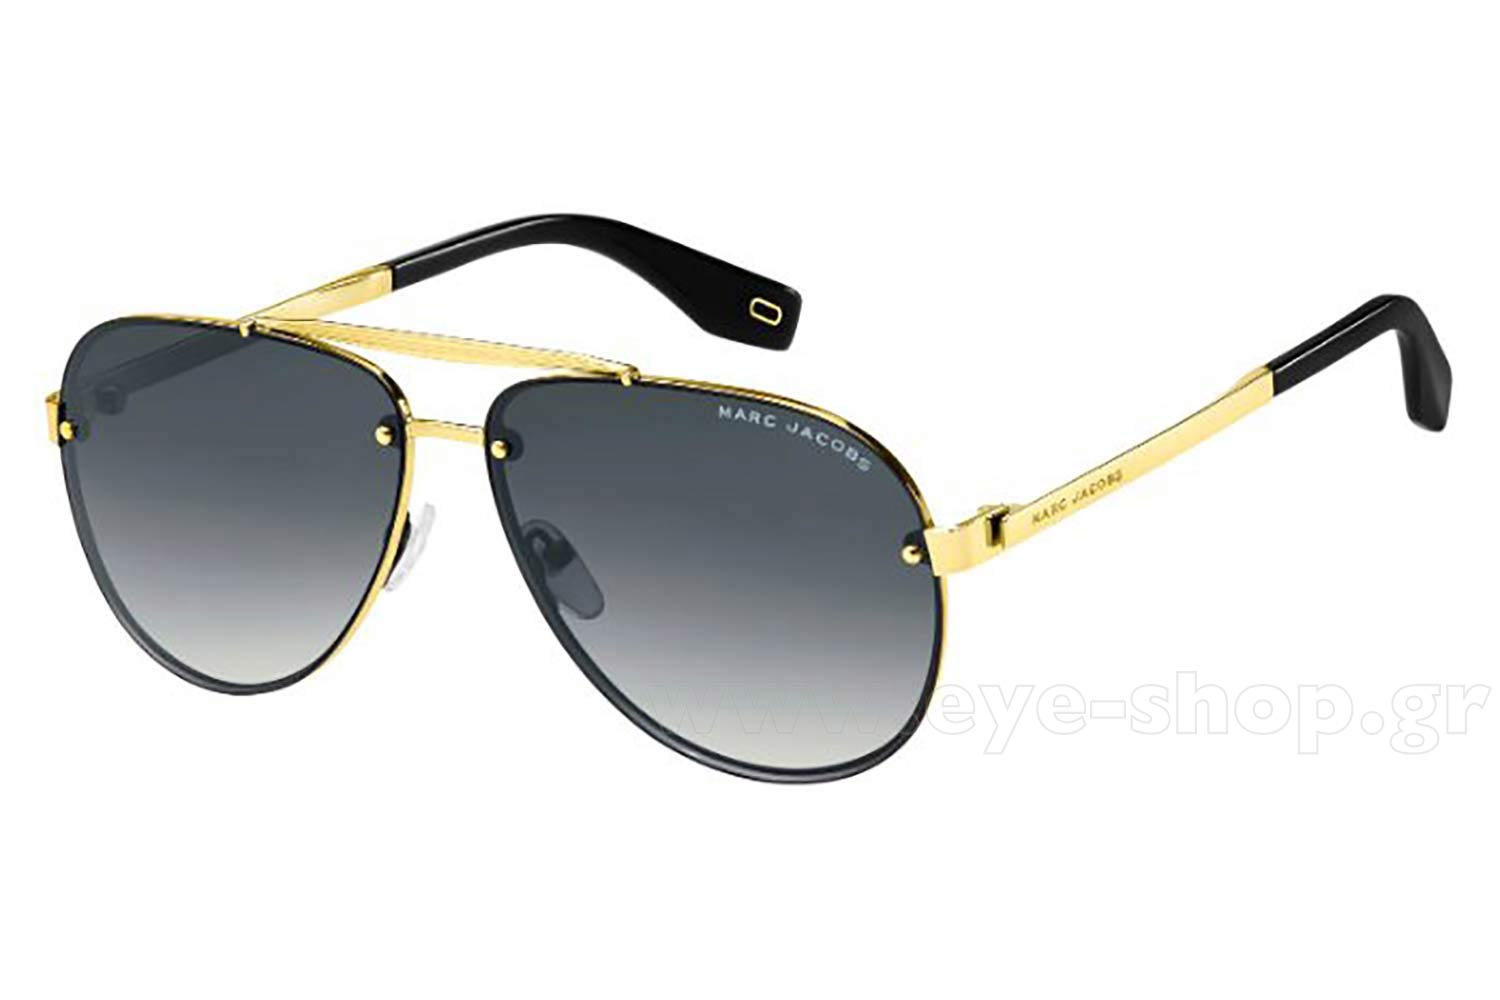 957ad2ad48 MARC JACOBS MARC 317 S 2F7 (9O) 61